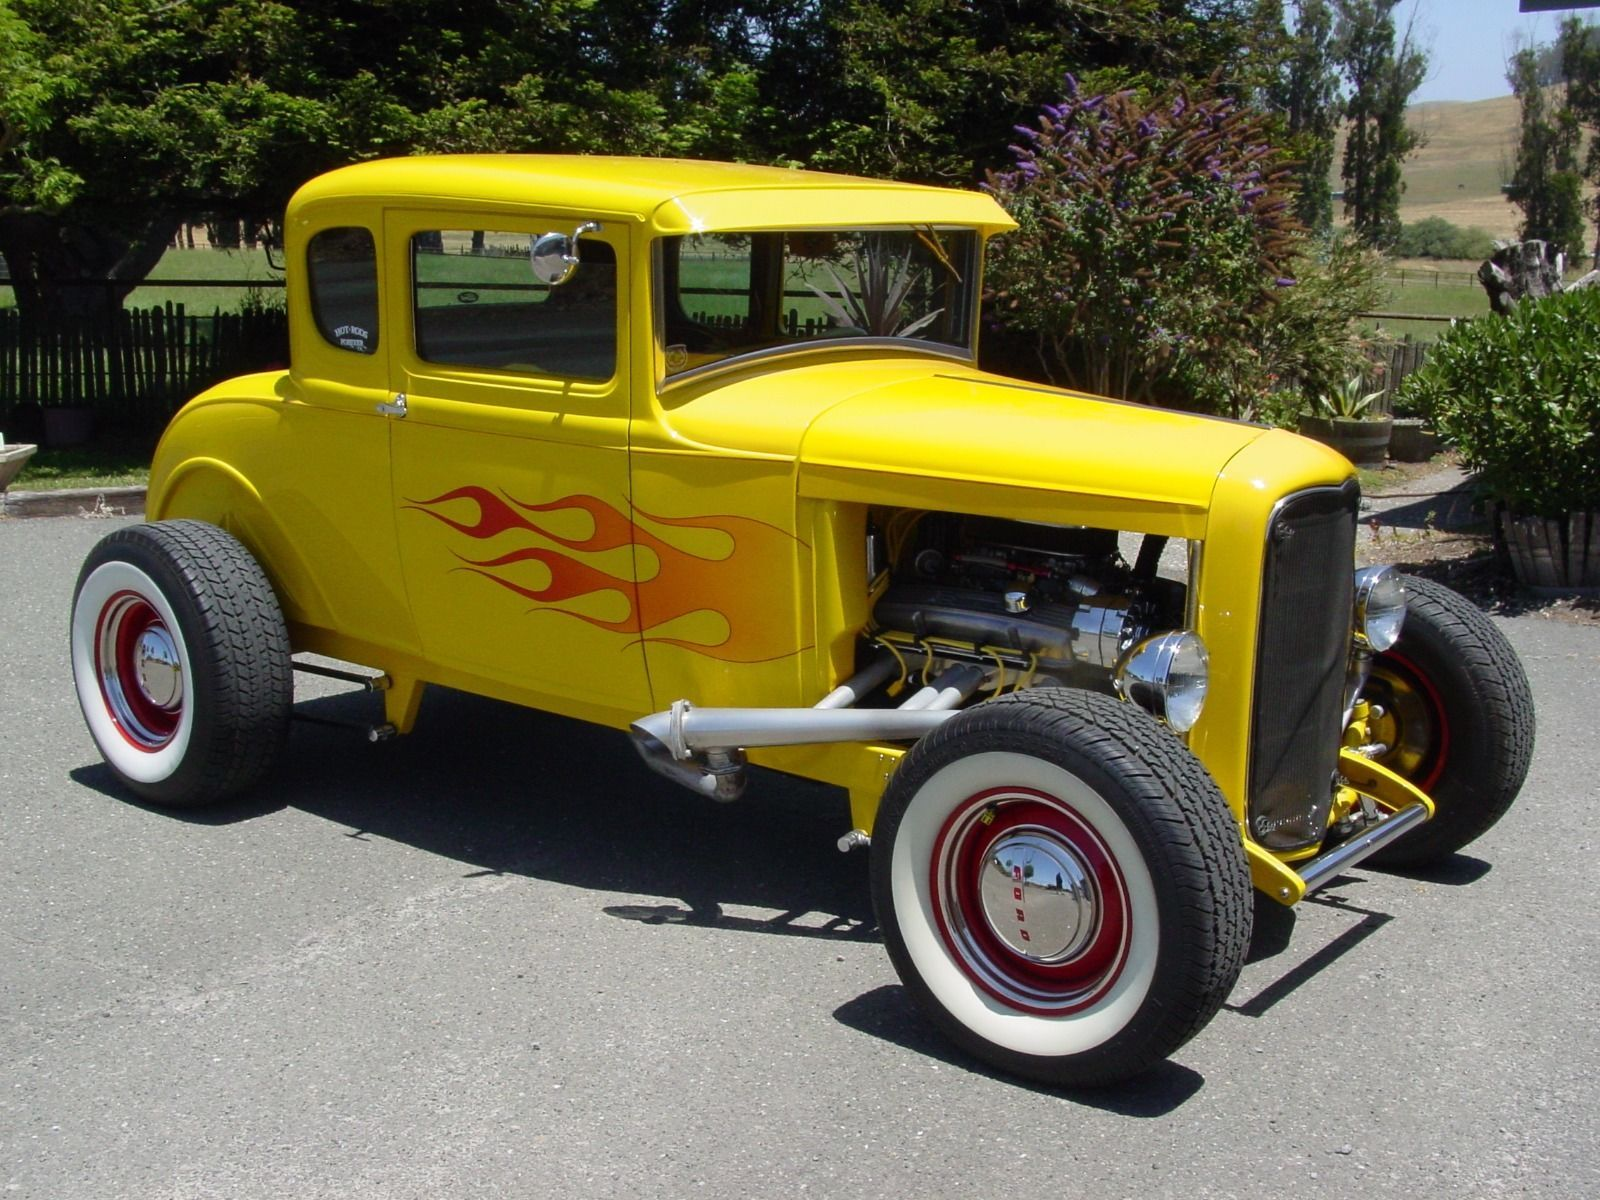 1930 Ford Model A Coupe Hot Rod | Hot rods for sale | Pinterest ...